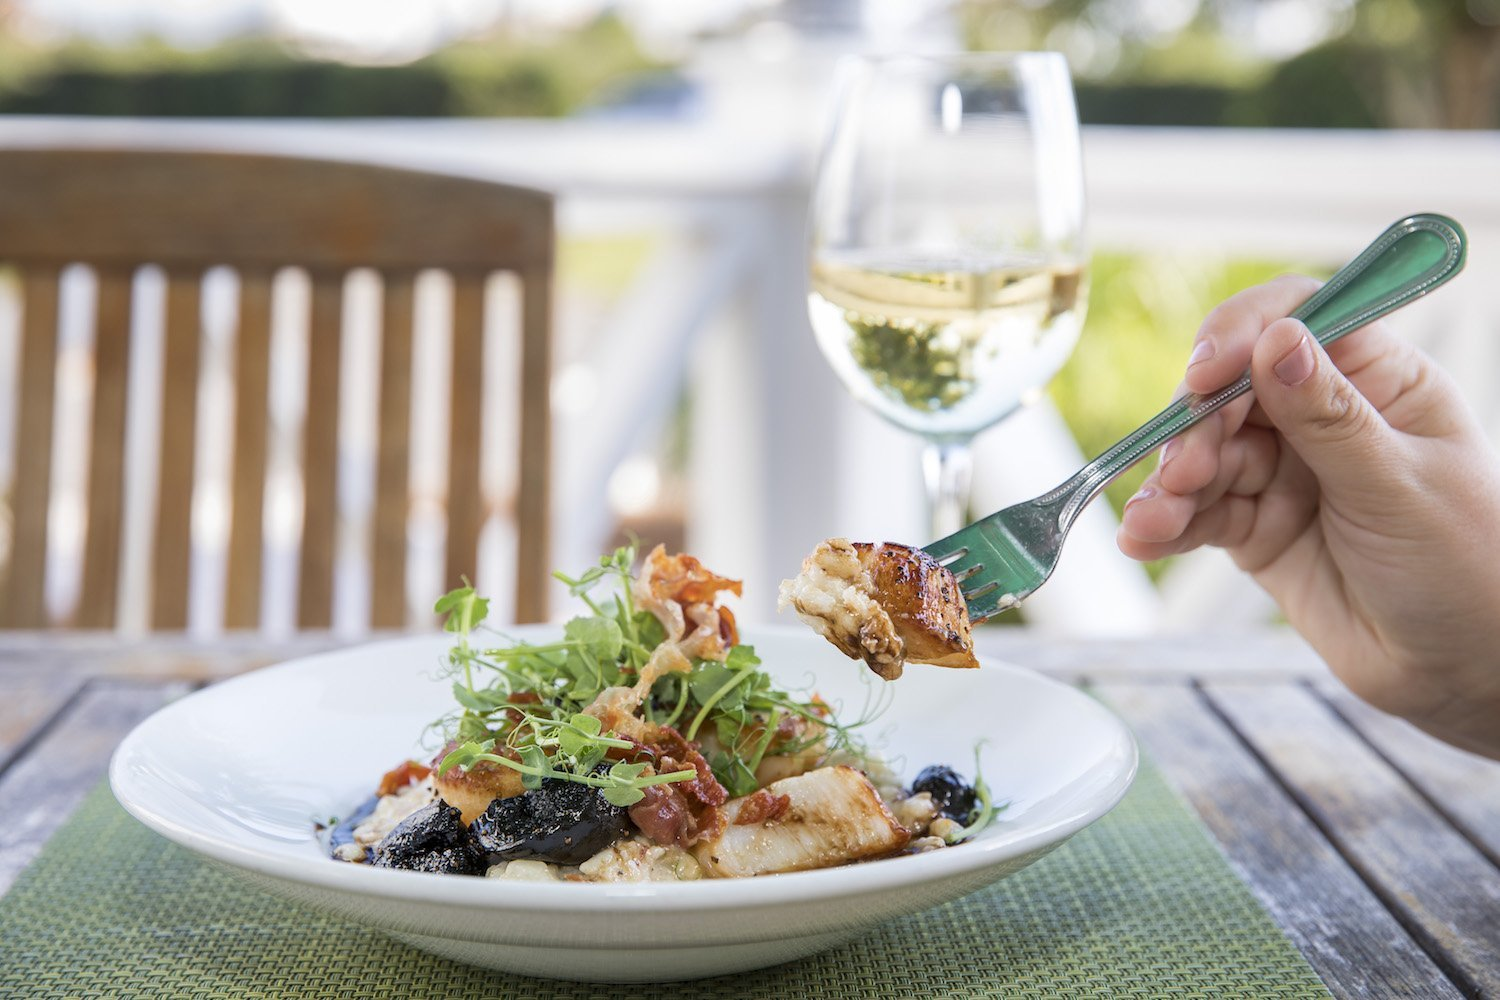 Summer 2019 Restaurant Guide - 30A Food and Wine